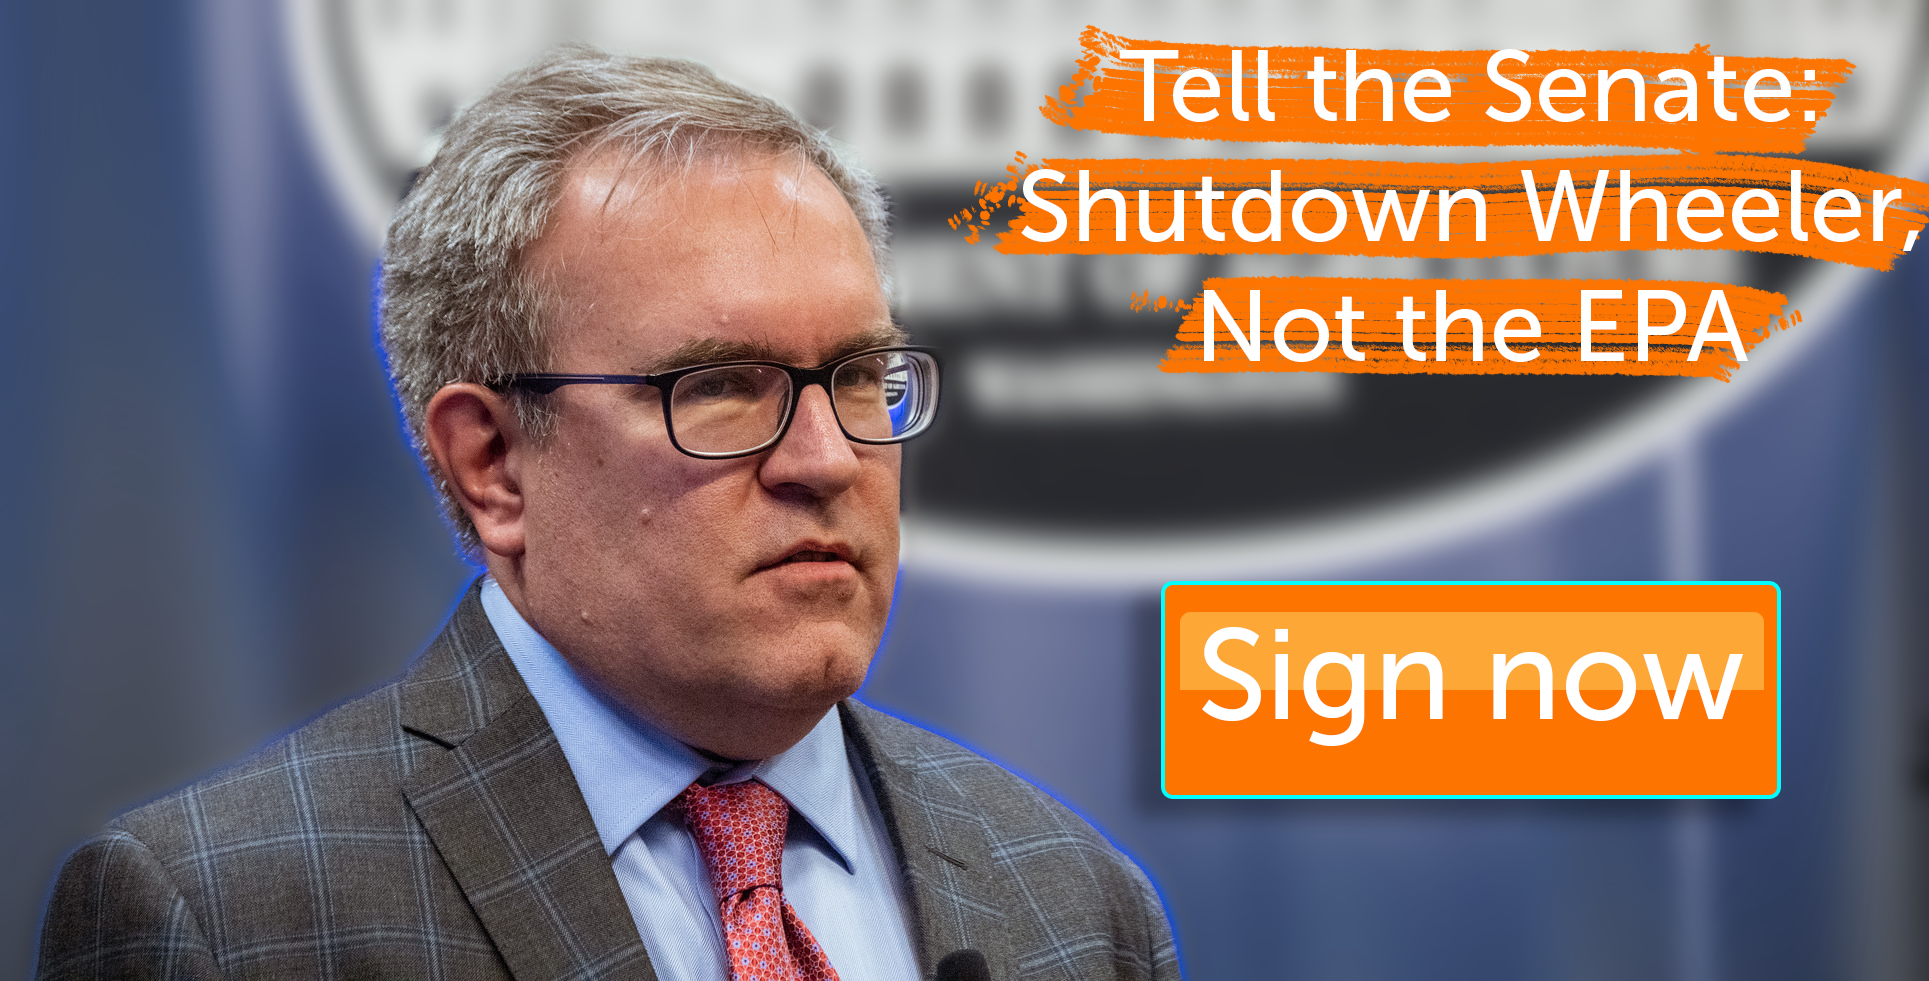 Shutdown Wheeler not the EPA